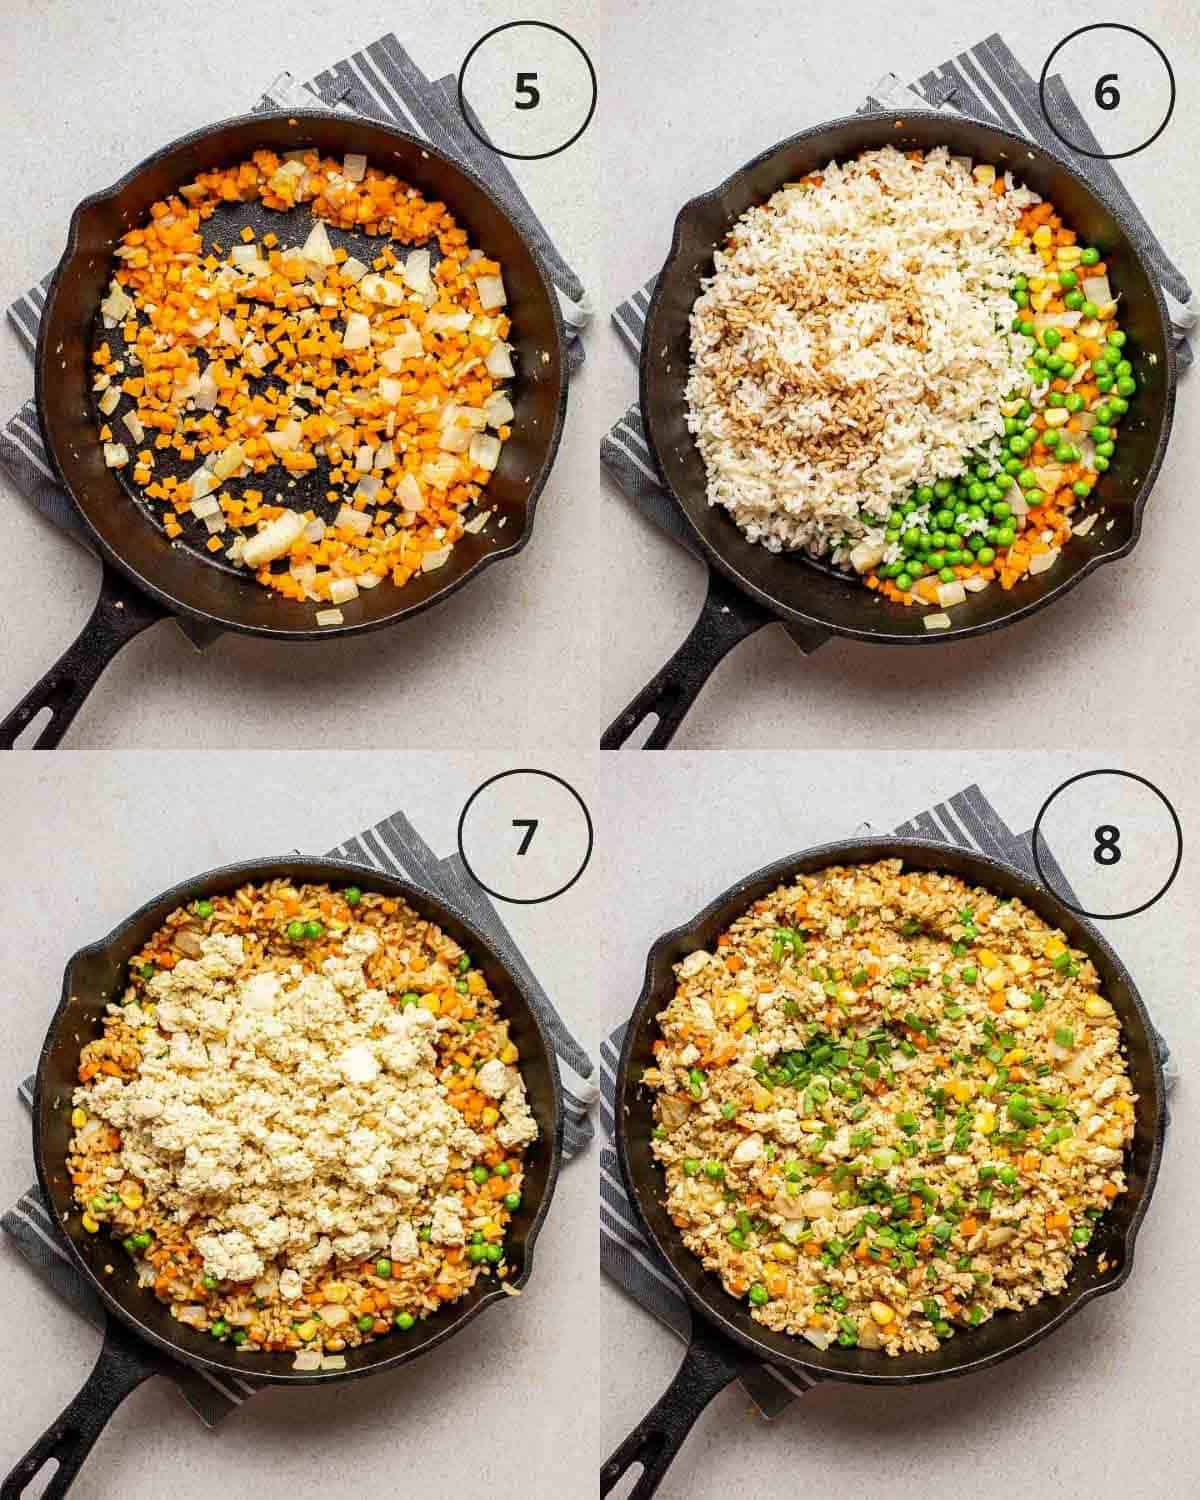 A collage showing sauteing carrot, adding in rice and vegetables, adding in scrambled tofu and topping with chopped scallions in a cast iron skillet.